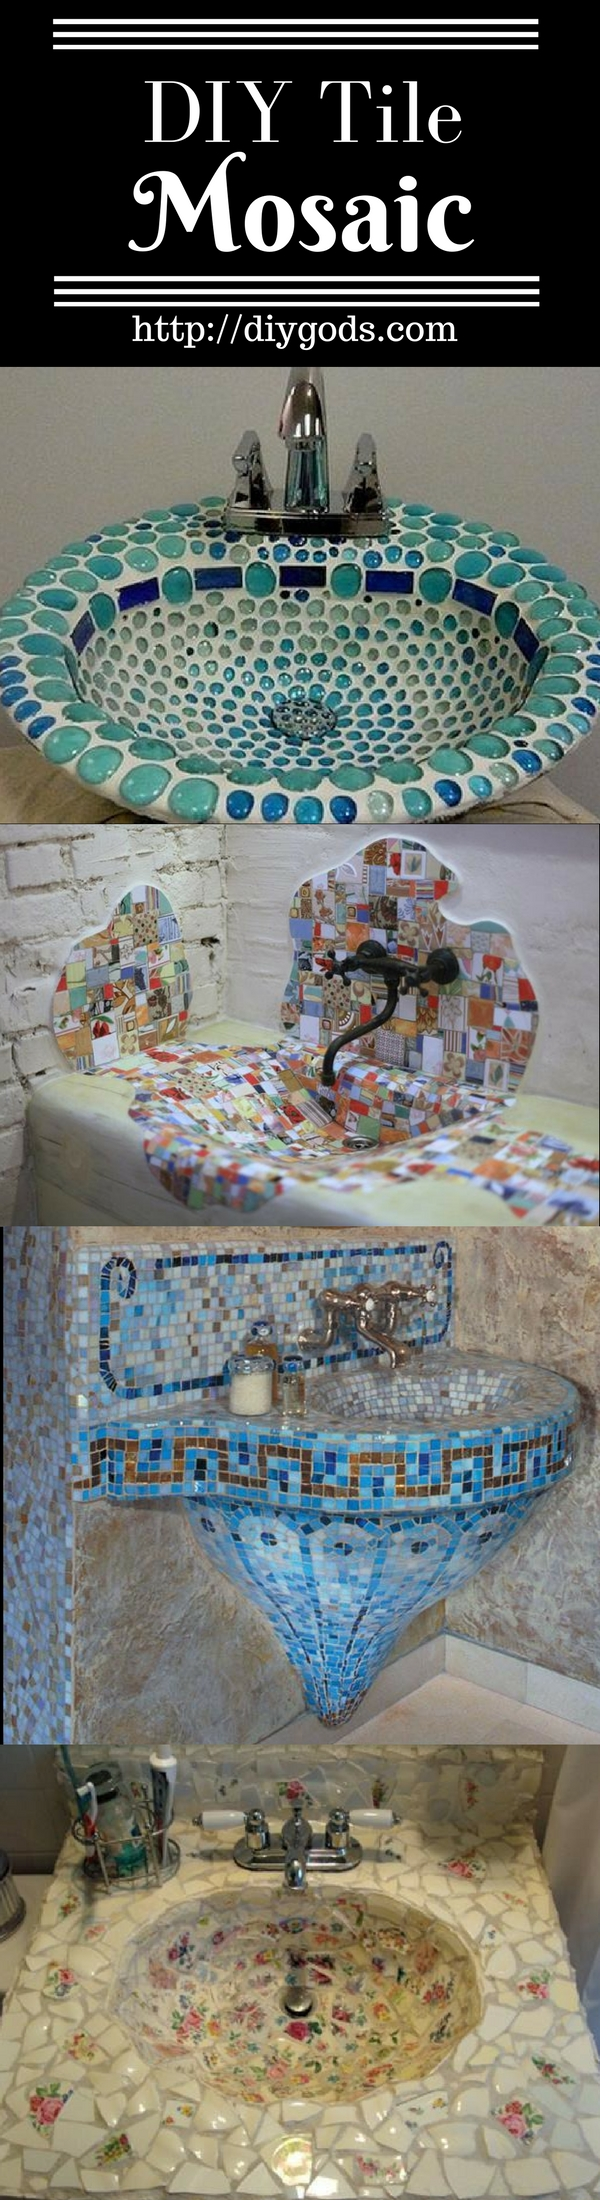 DIY Mosaic Tile